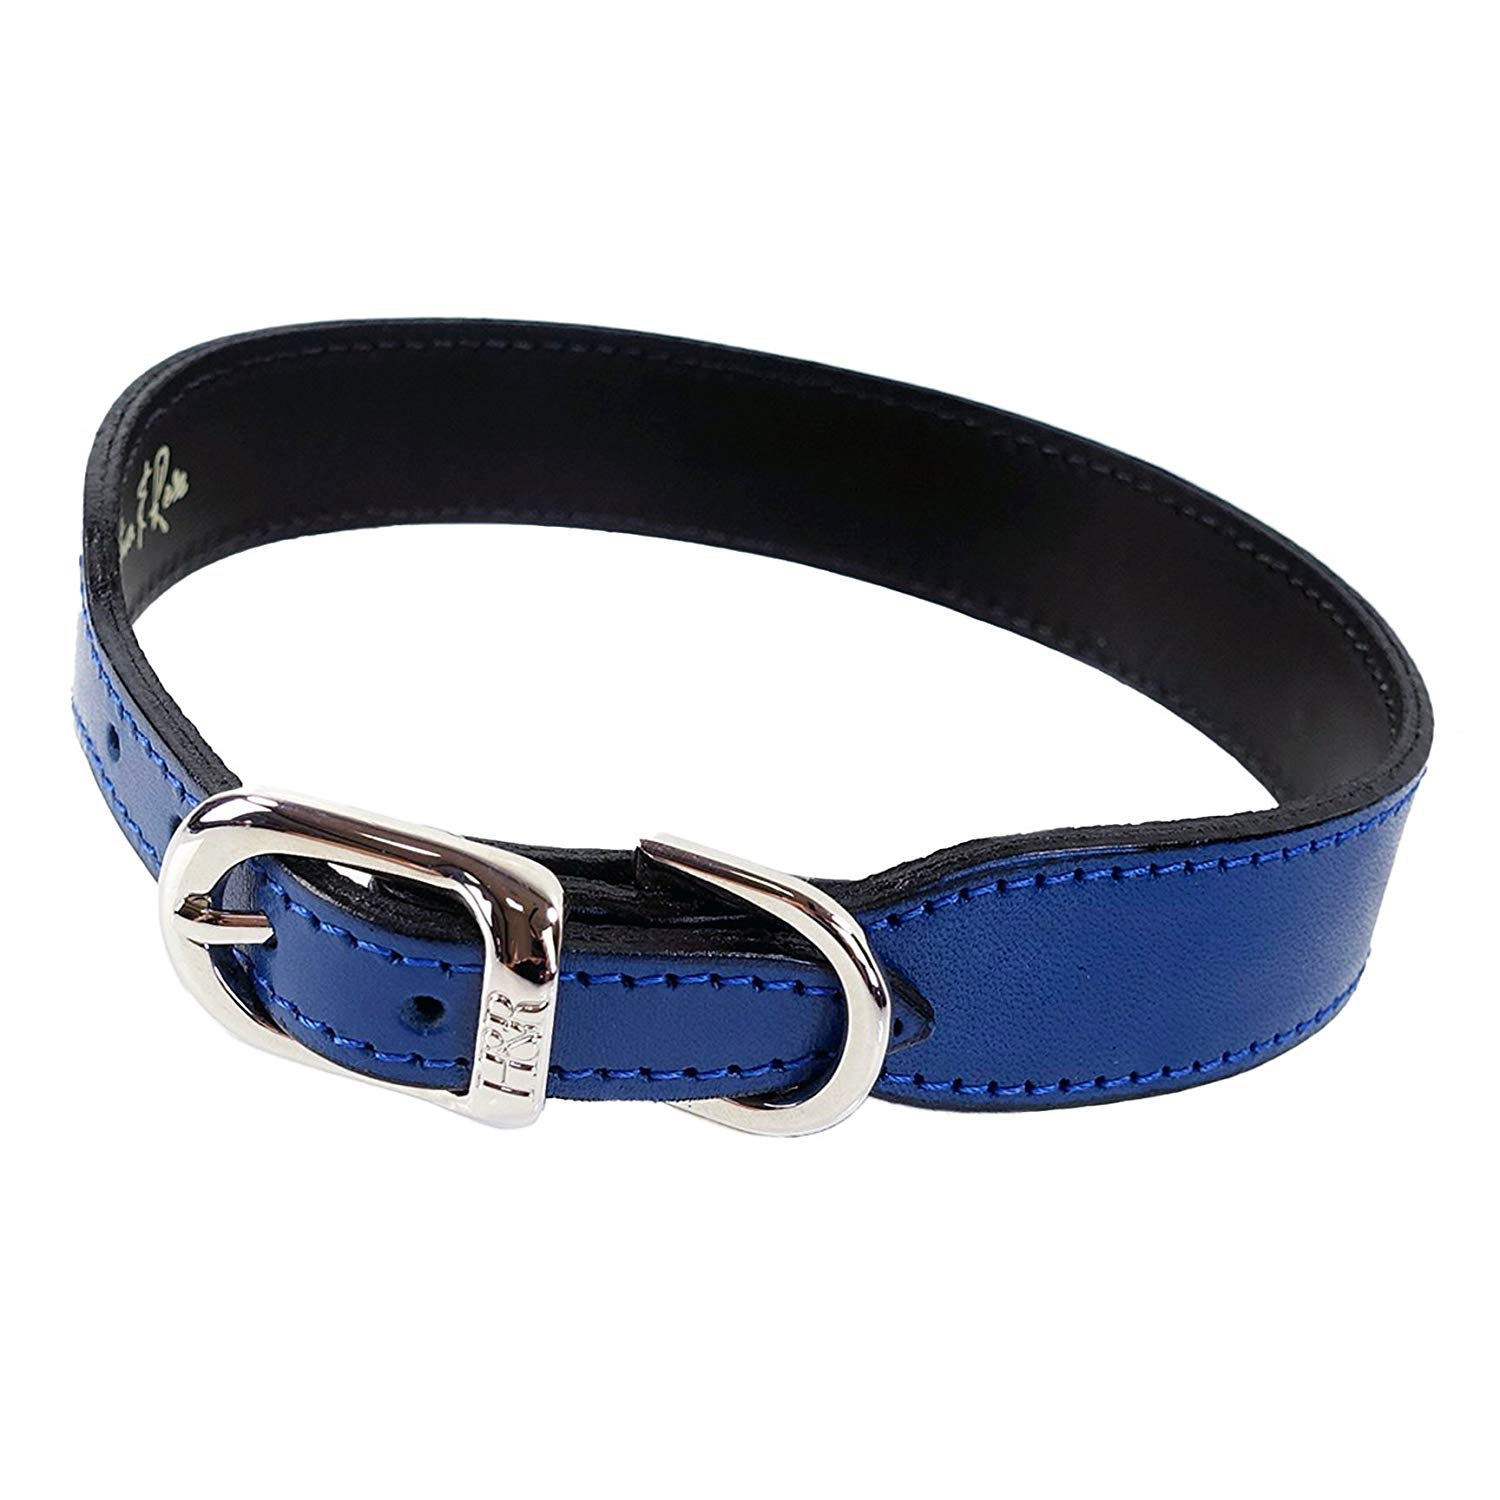 Hartman & Rose Plain Nickel Plated Dog Collar, 14 to 16-Inch, Cobalt Blue